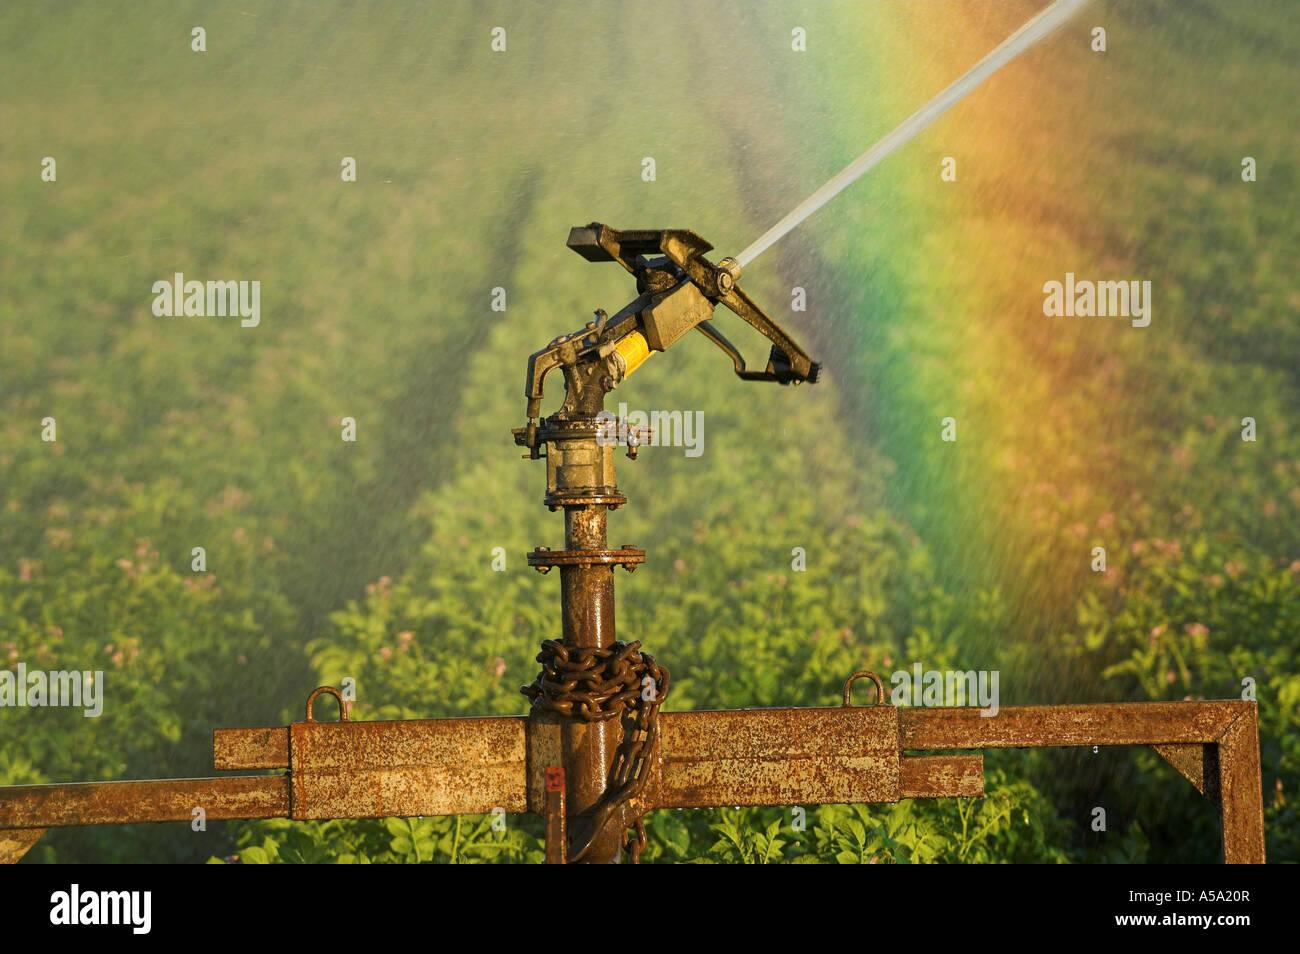 Irrigation Water being sprayed onto potato crop and rainbow forming in spray - Stock Image